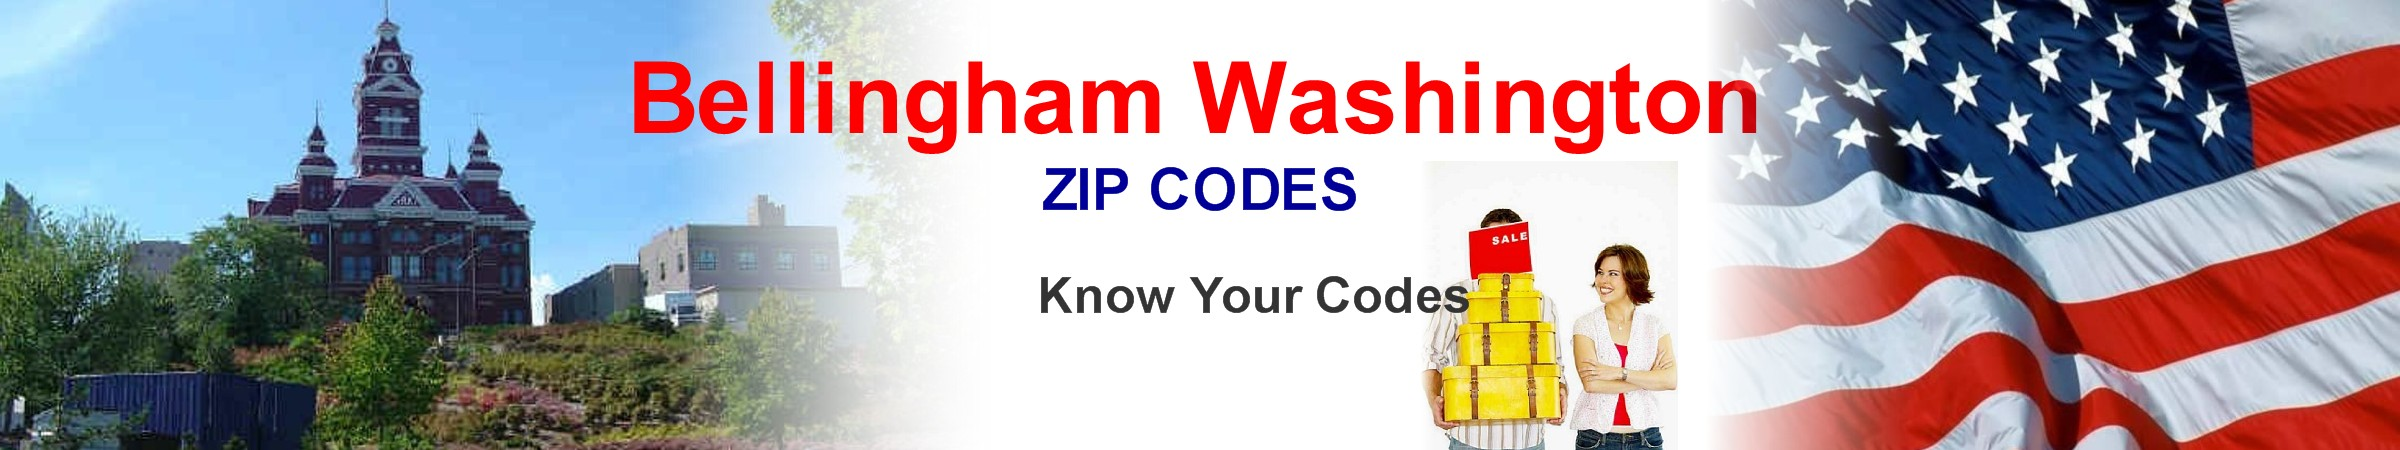 Bellingham Zip Codes - Know Your Codes